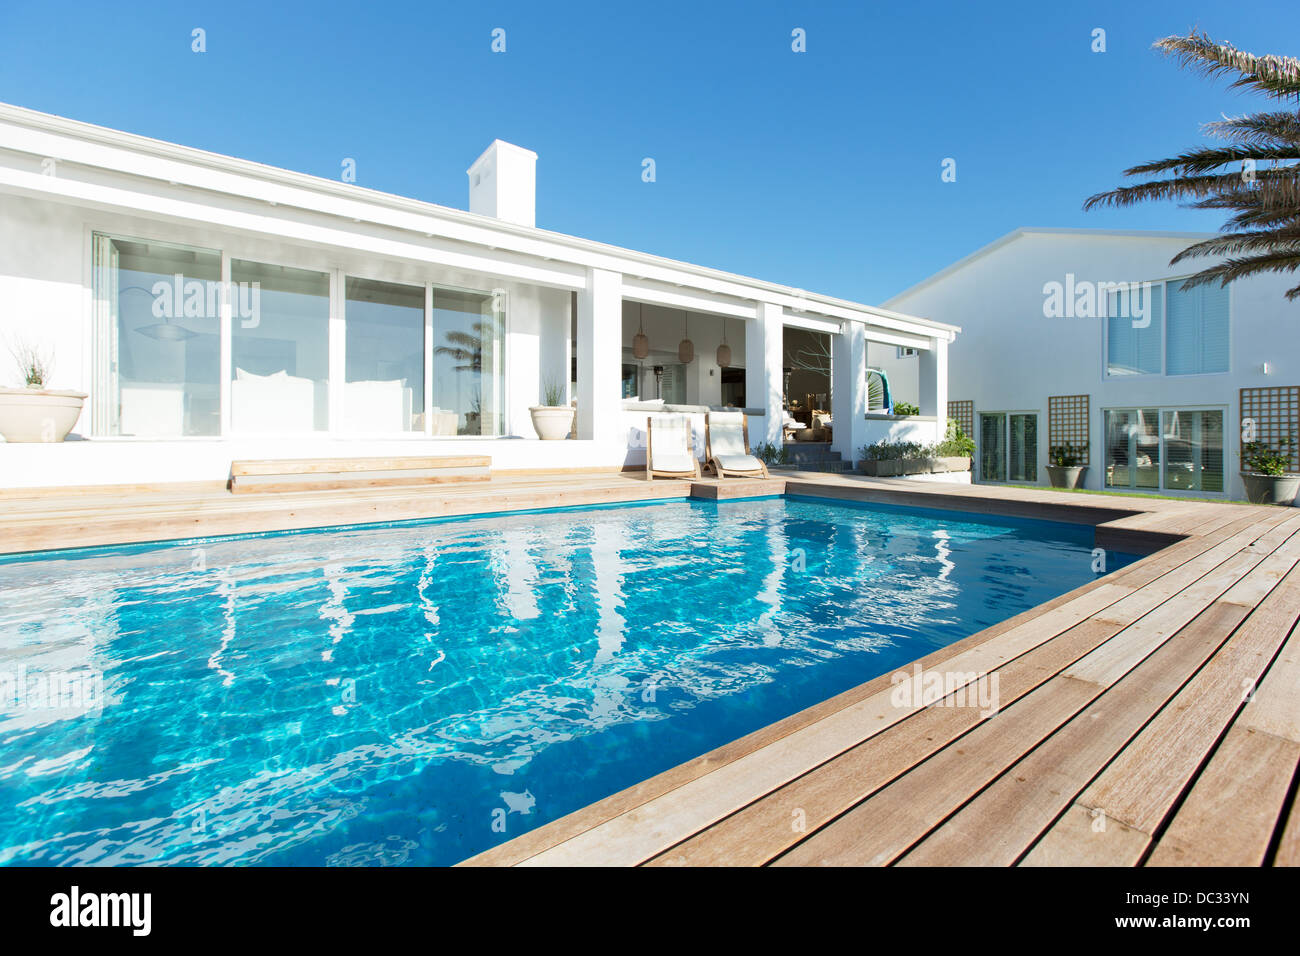 Luxury house and swimming pool - Stock Image